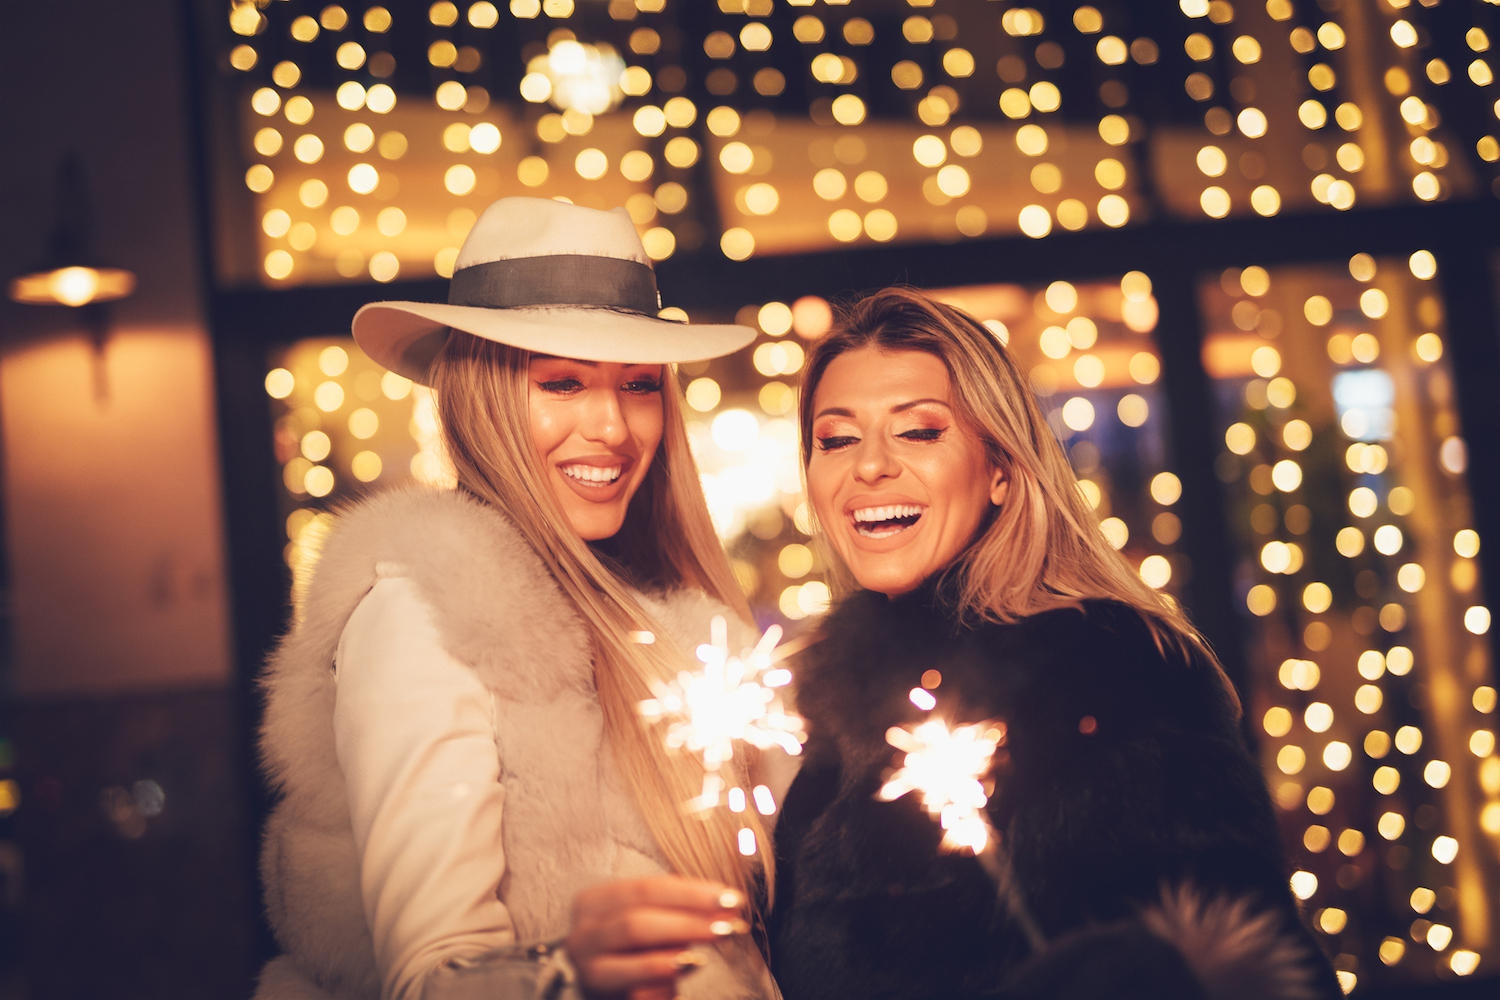 Young beautiful cheerful female friend with sparklers having fun and enjoying in the city street at night at Christmas time. (Young beautiful cheerful couple with sparklers having fun and enjoying in the city street at night